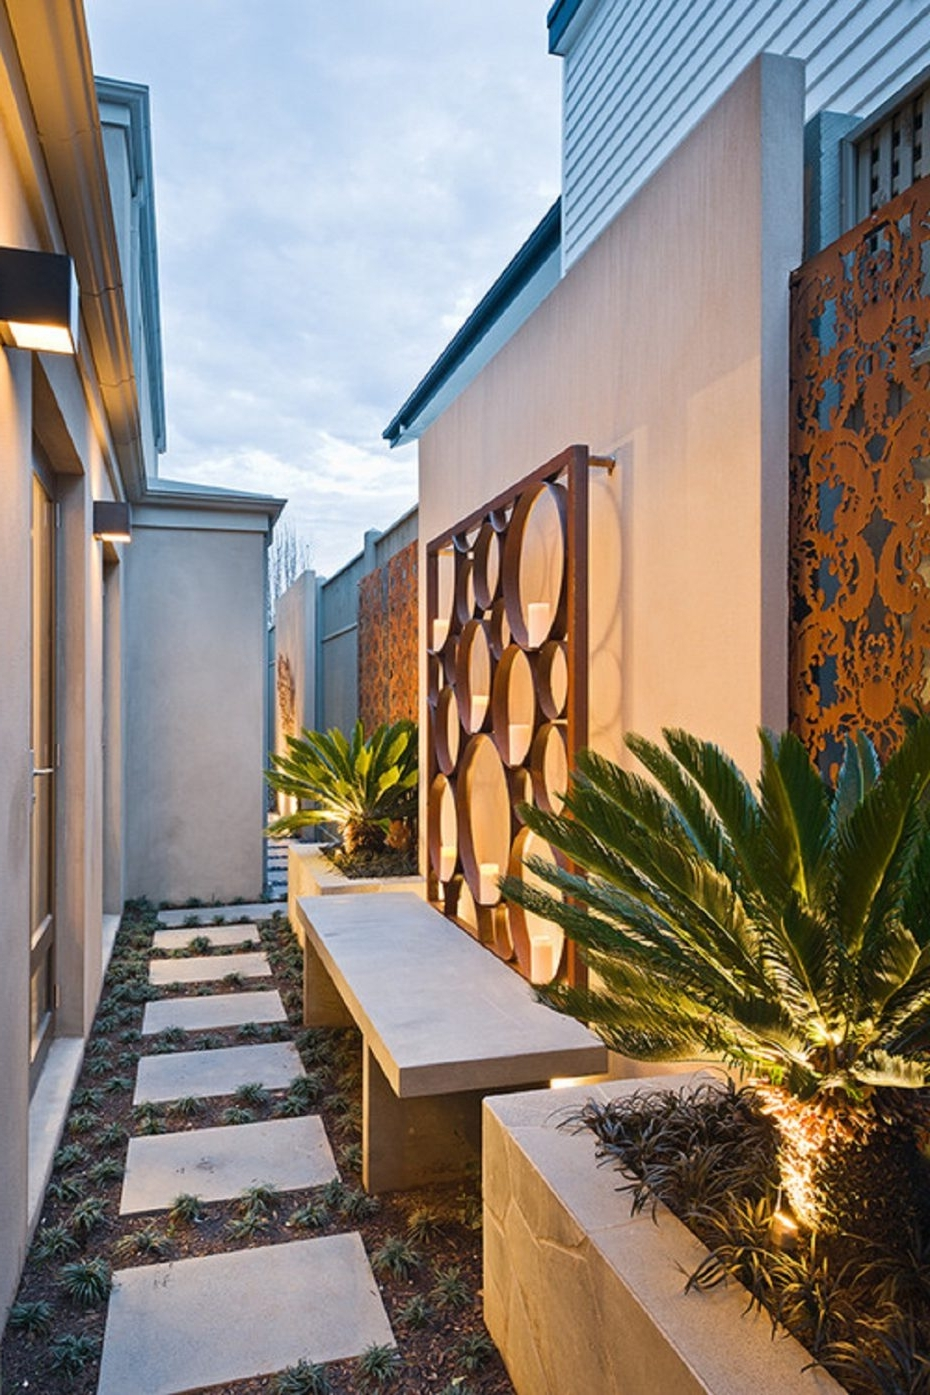 Outdoor Wall Art Within Well Known Wall: Outdoor Wall Art Idea For Entrance Furnished With Bench And (View 14 of 15)